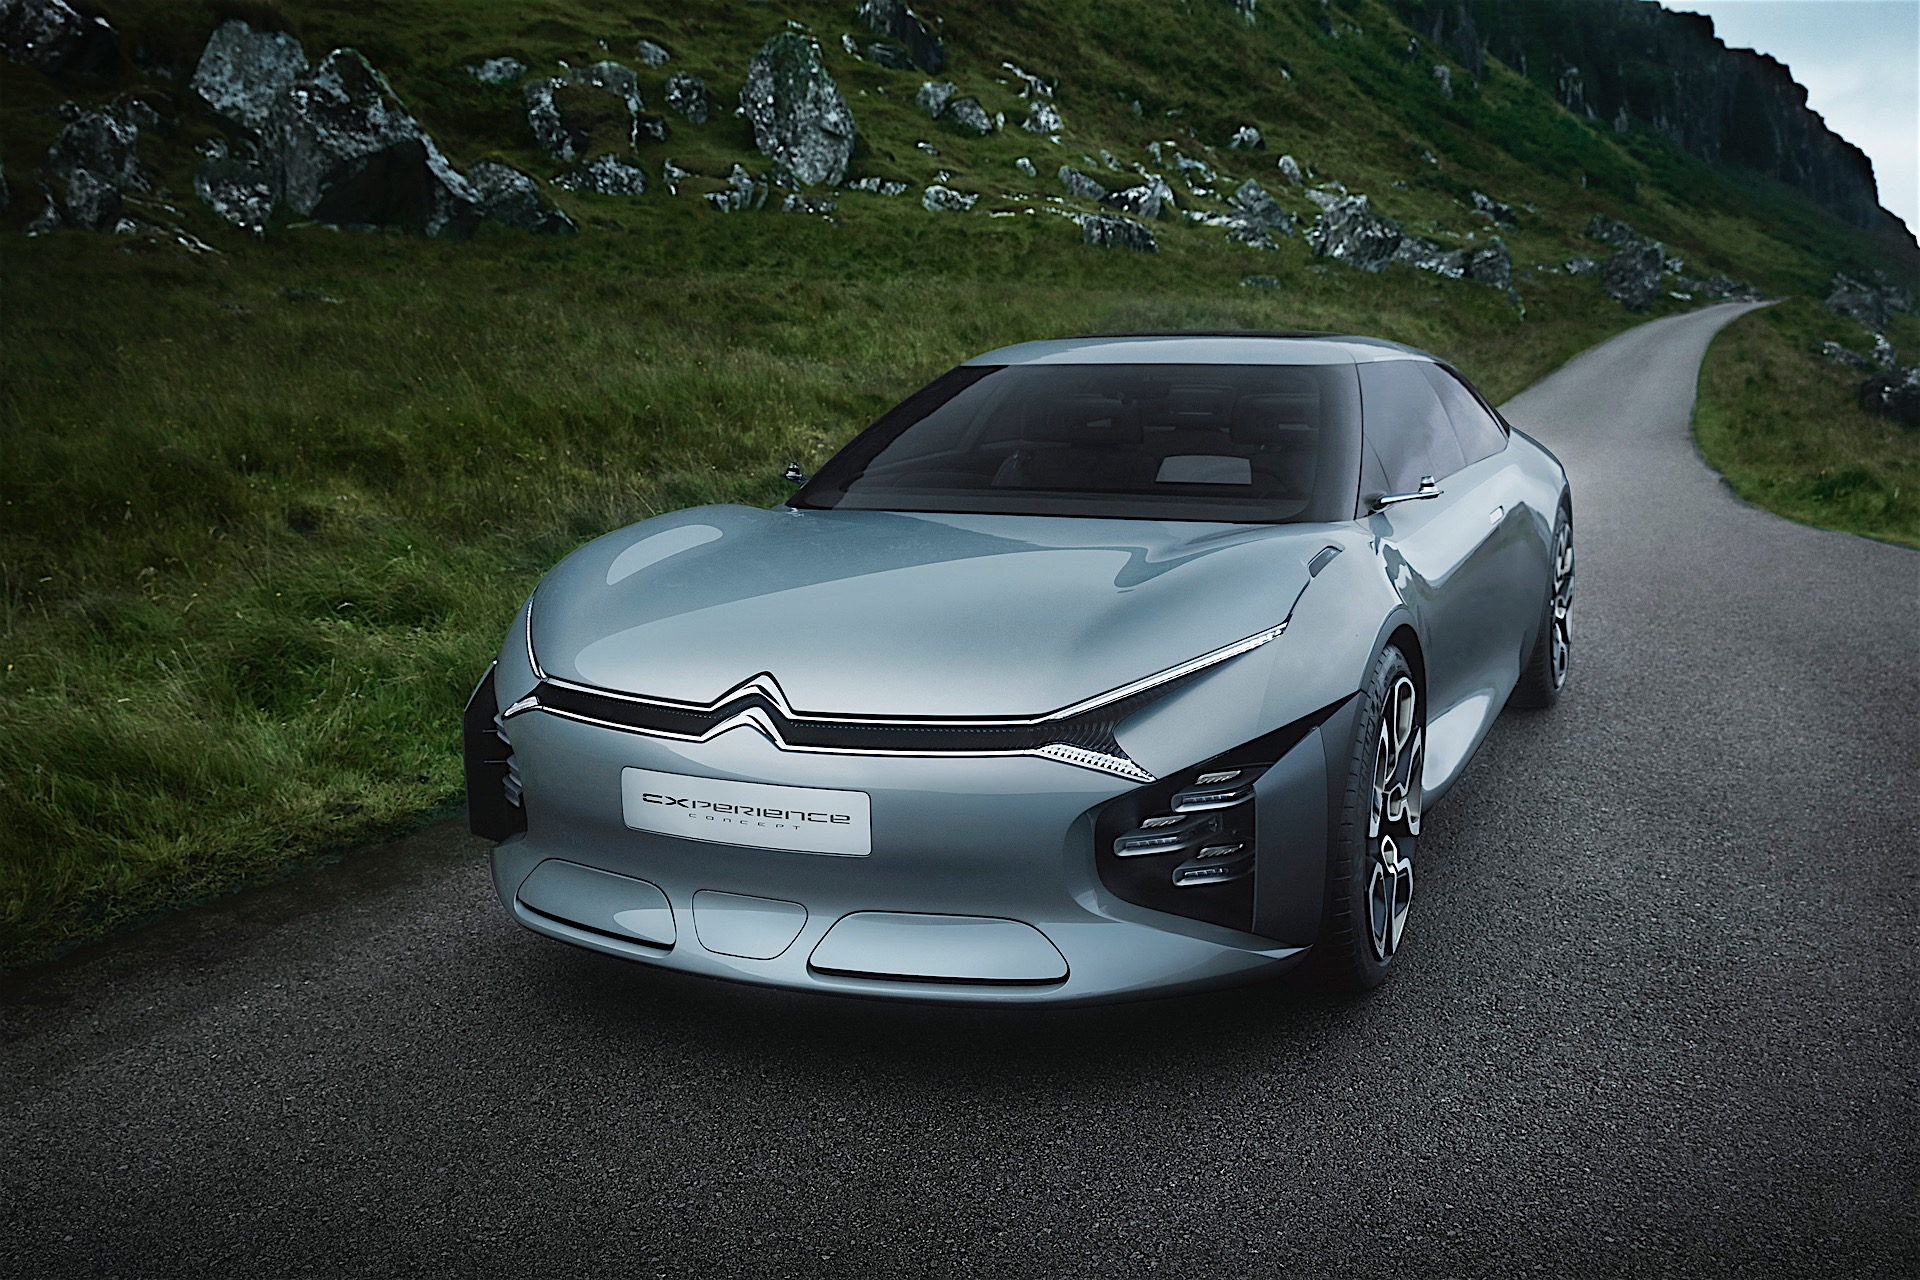 Citroen reveals new flagship concept